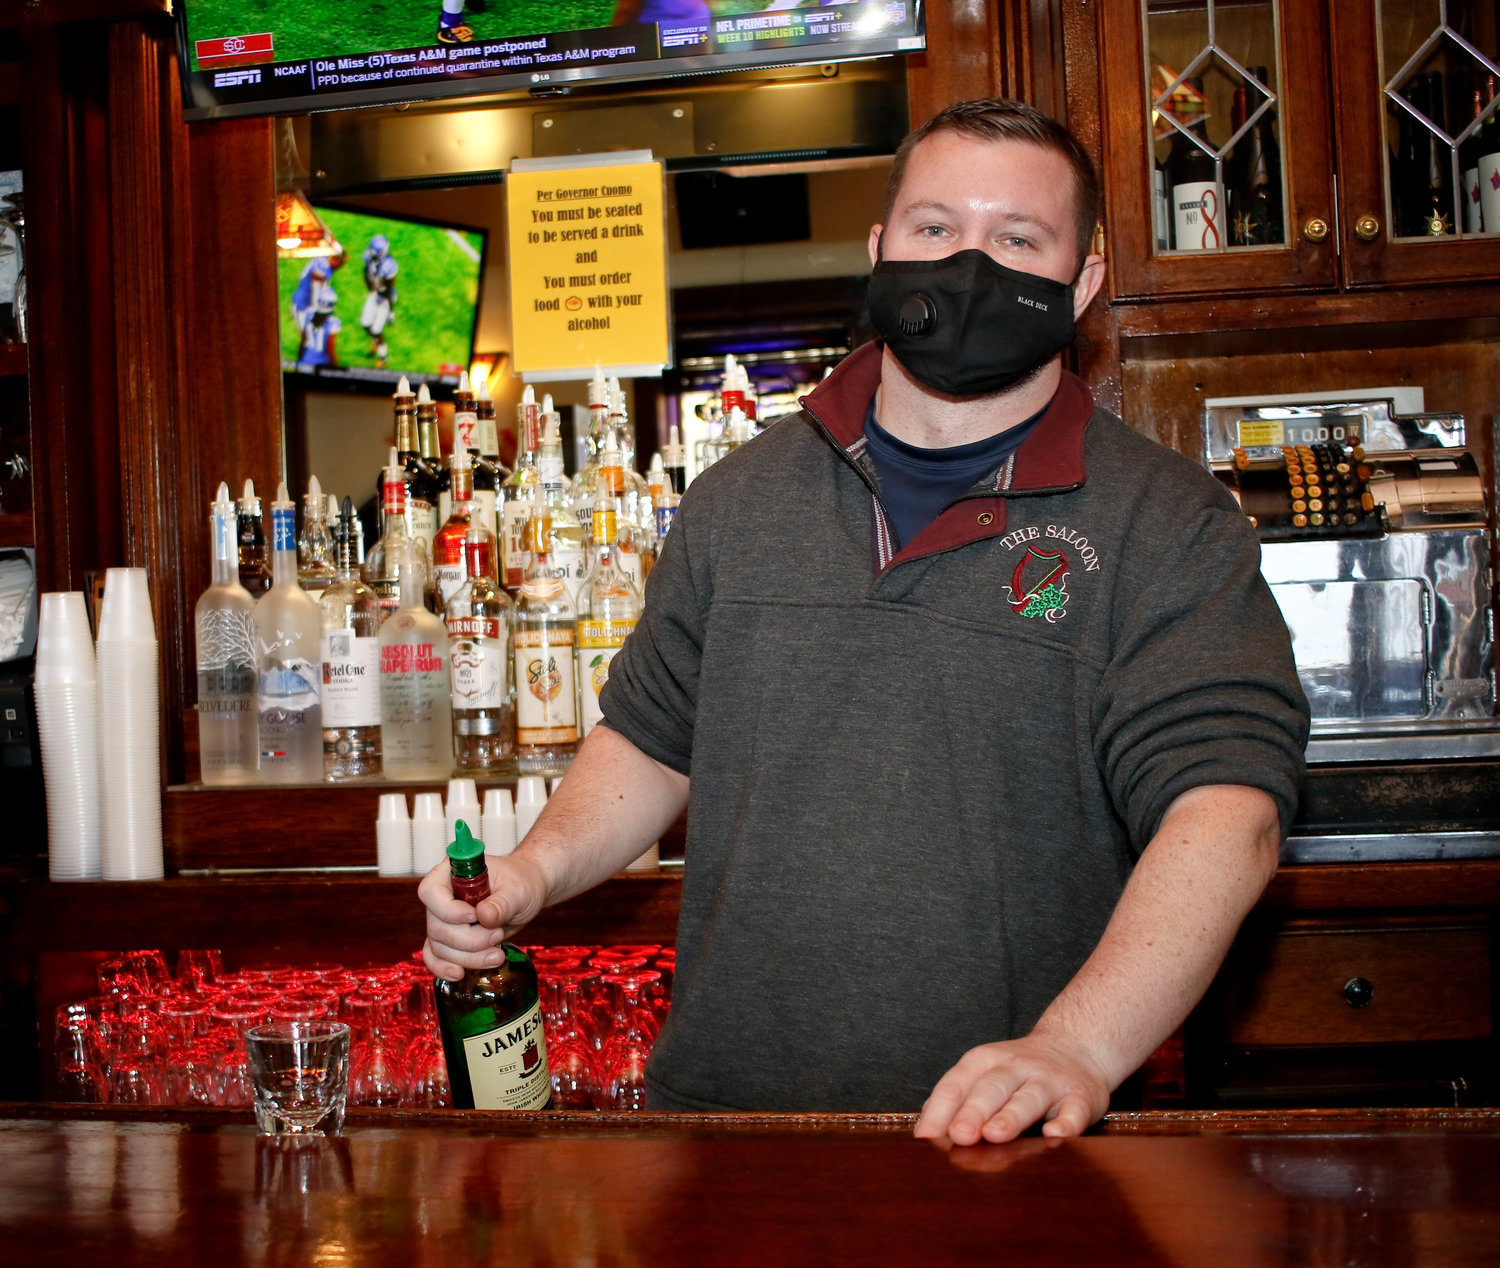 Phil Garry, owner of the Saloon, on West Beech Street, above, said the pandemic has negatively impacted his business and added that new restrictions wouldn't help.